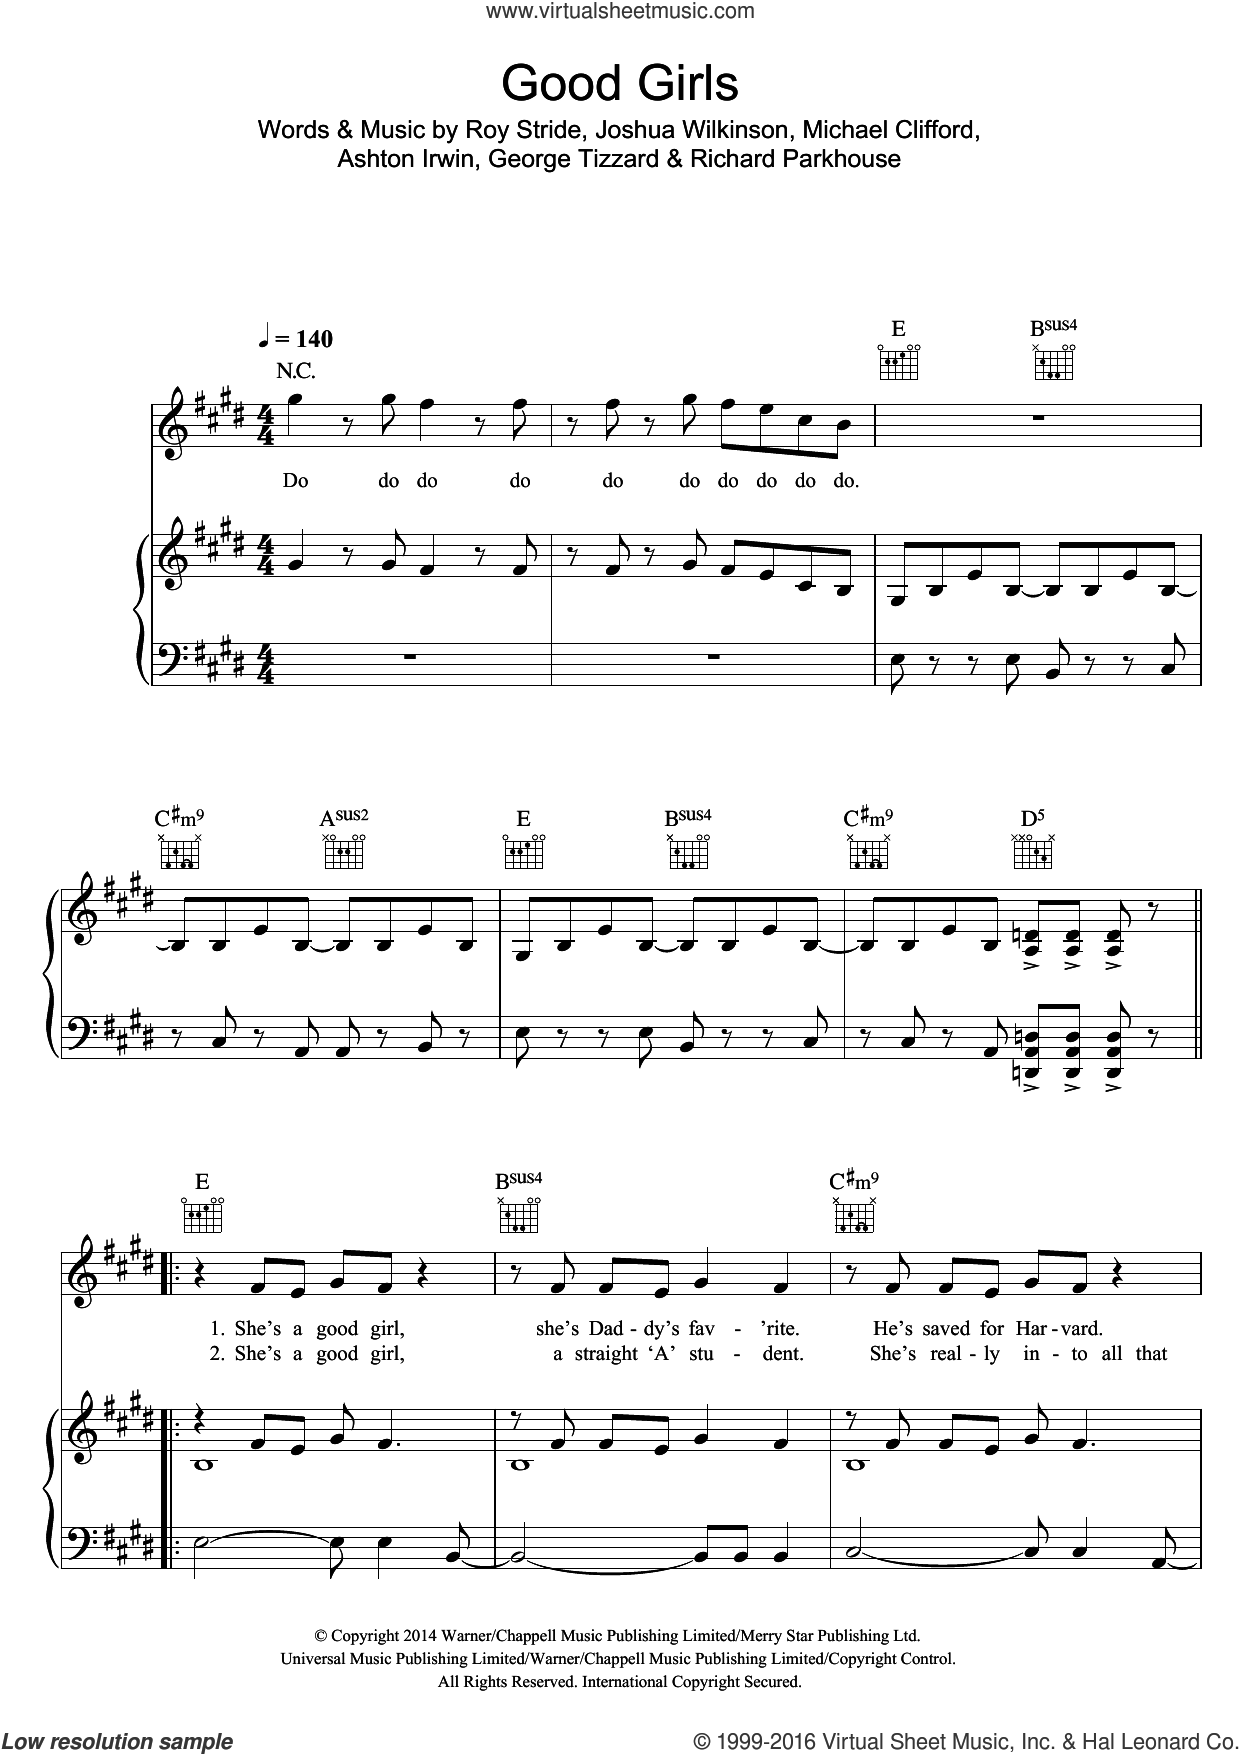 Good Girls sheet music for voice, piano or guitar by Ashton Irwin, George Tizzard, Michael Clifford and Roy Stride. Score Image Preview.